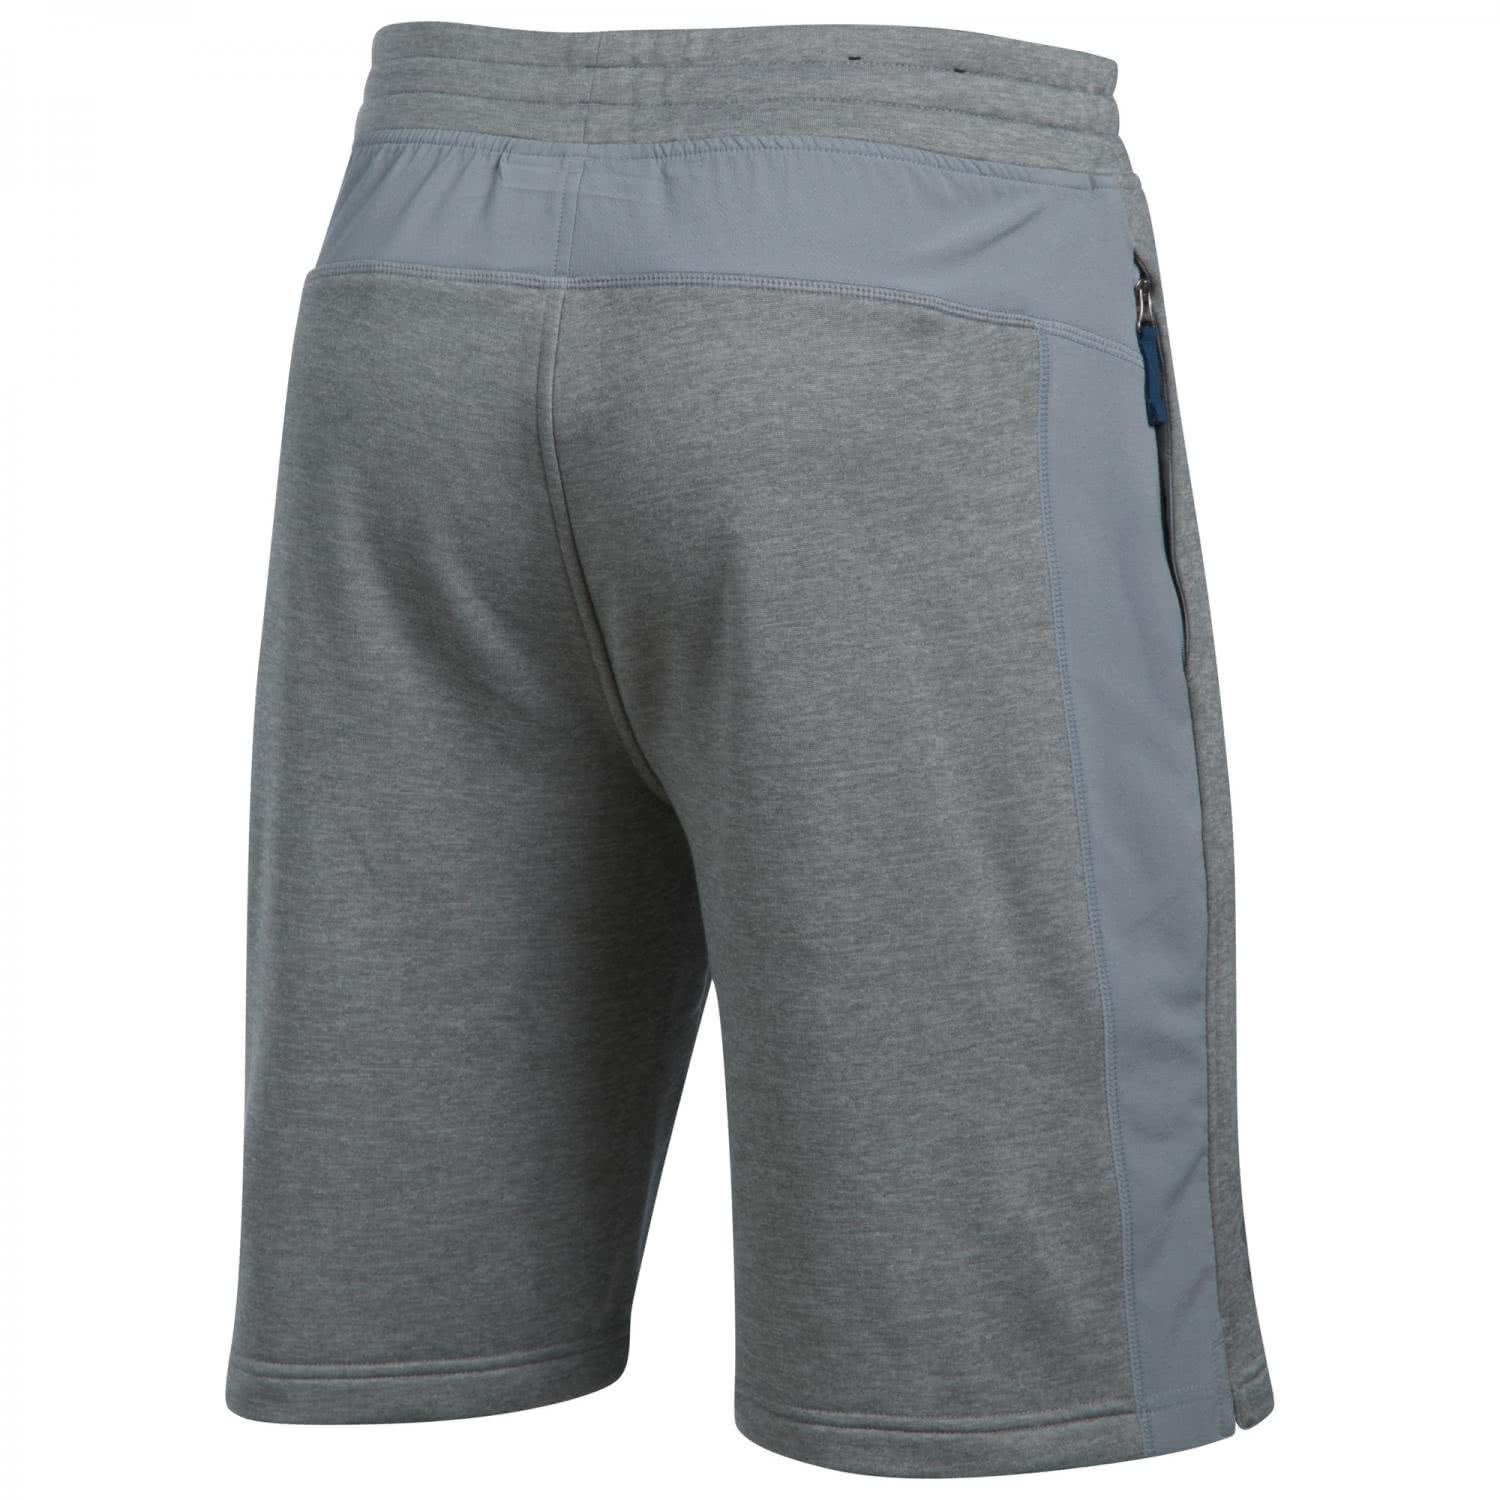 Men's Under Armour Tech Terry Short, Grey Heather/Steel, 4XL x One Size by Under Armour (Image #2)